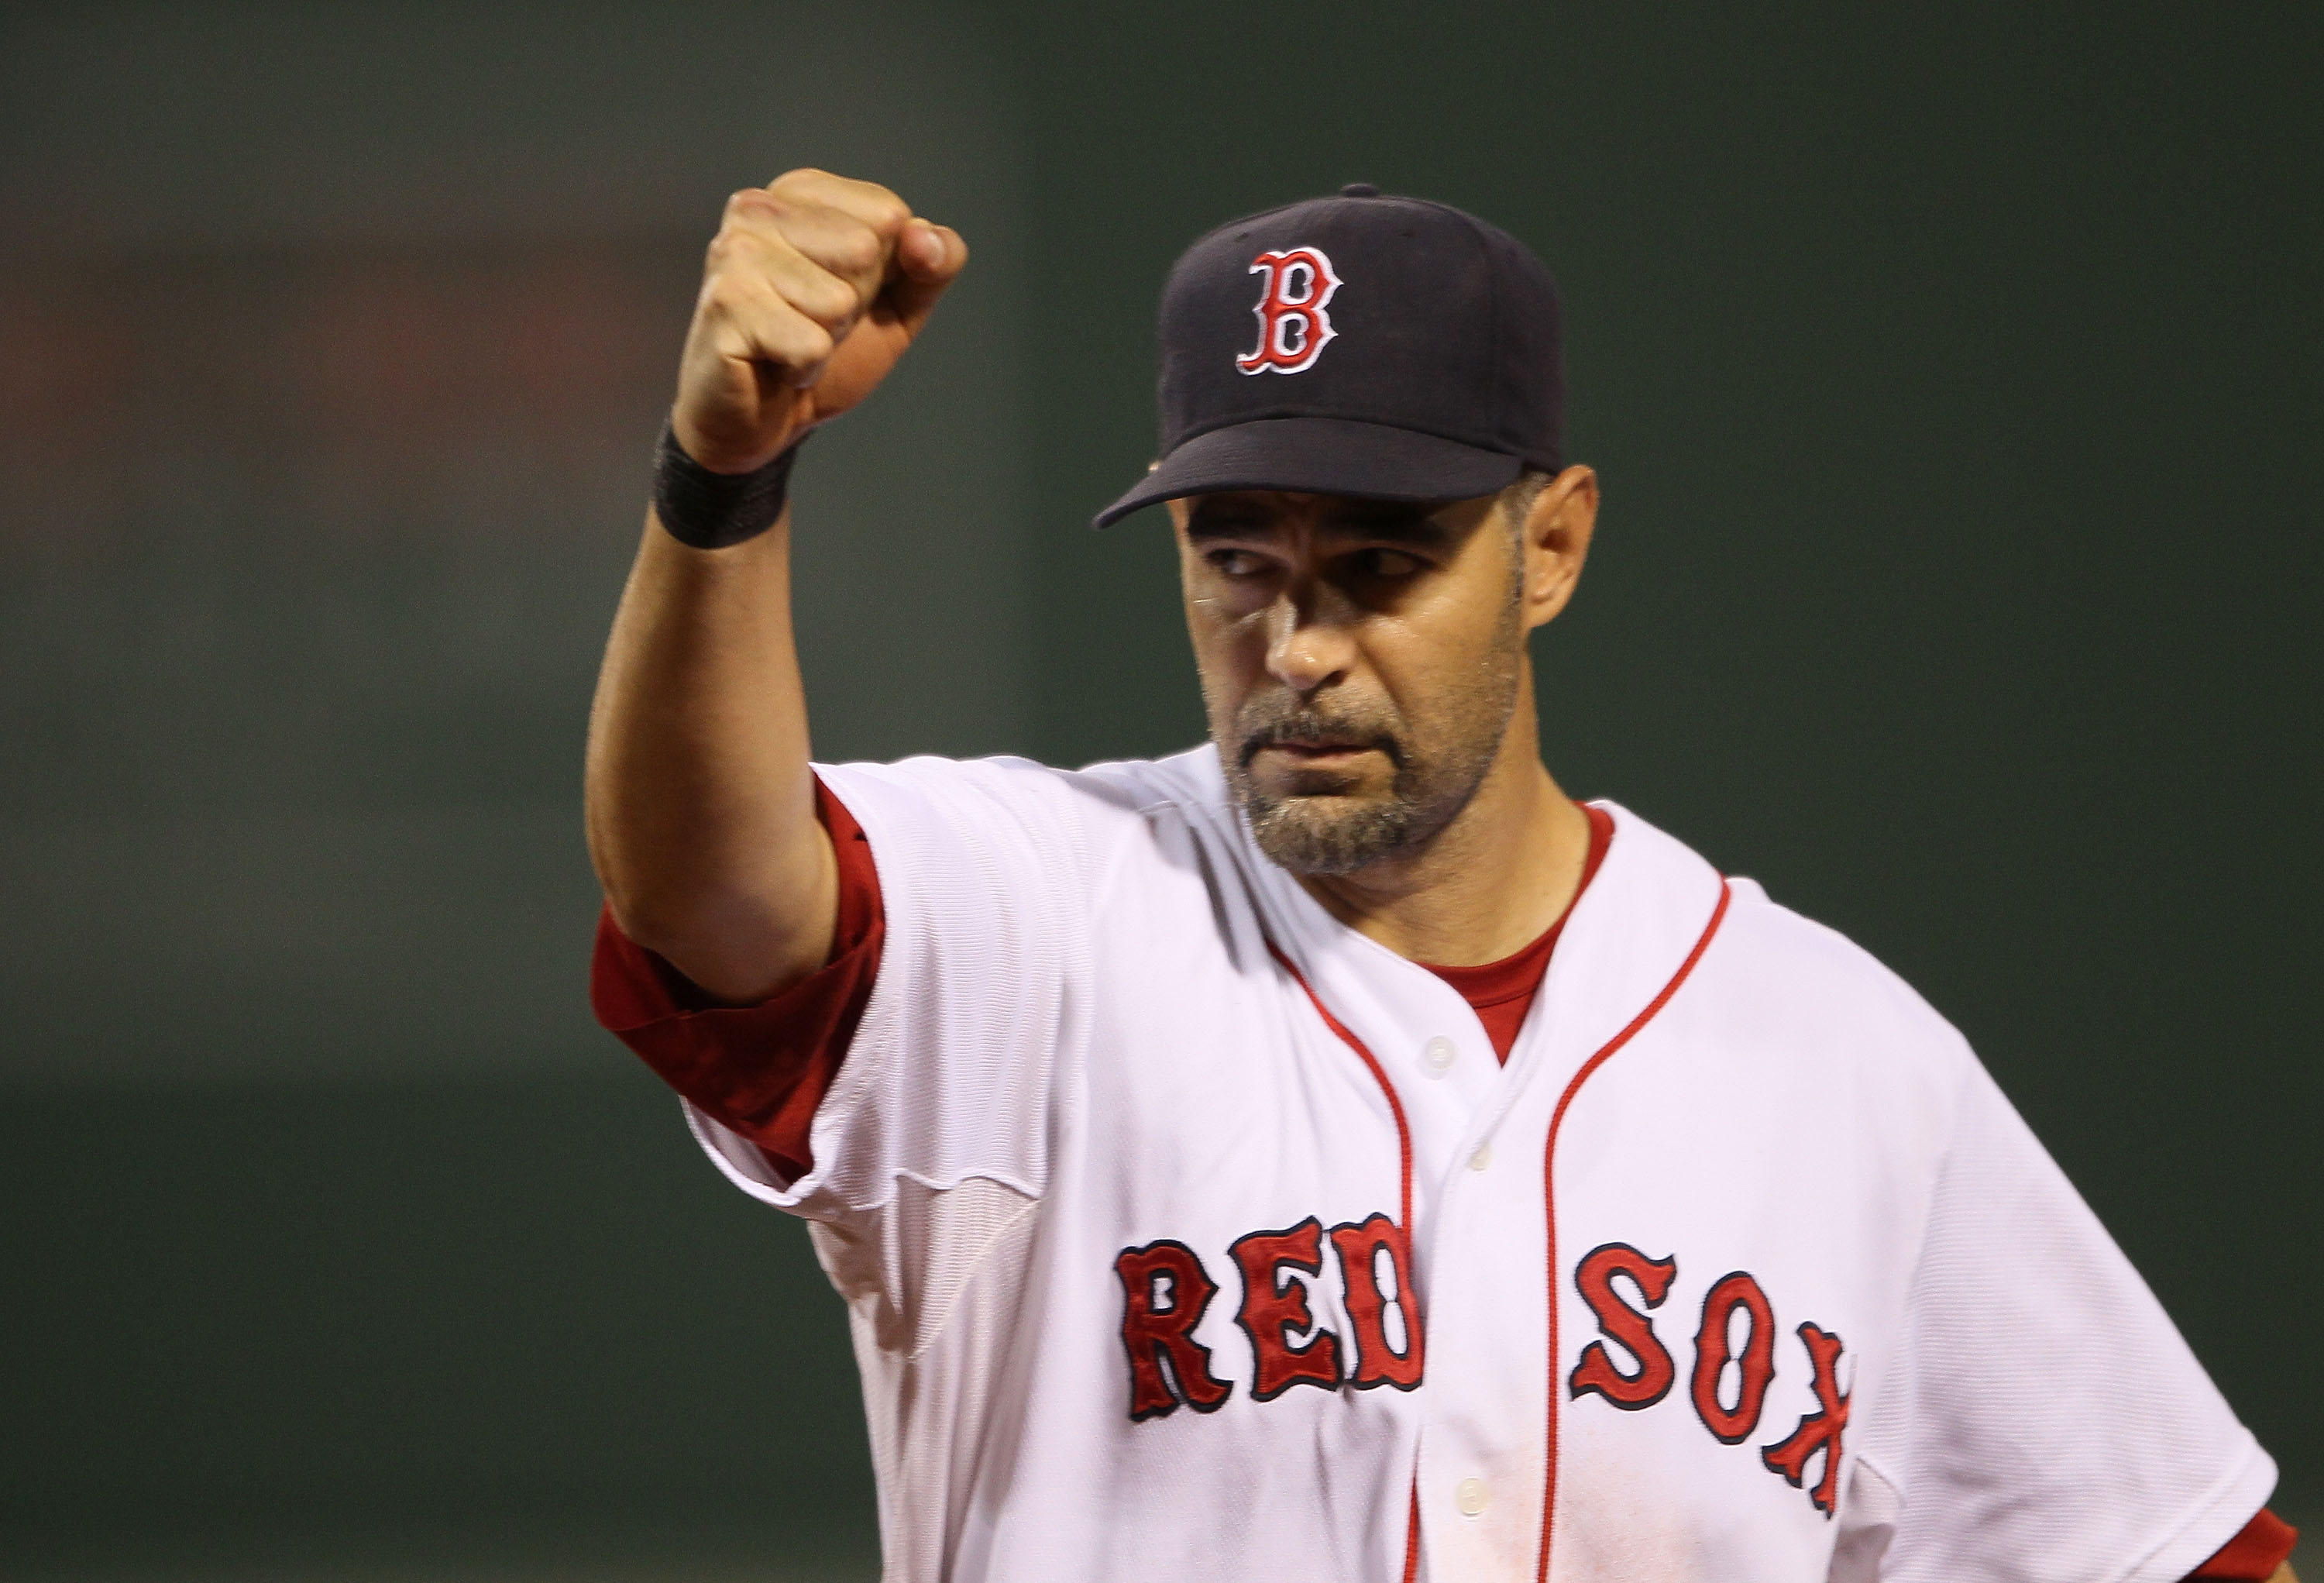 BOSTON - AUGUST 19:  Mike Lowell #25 of the Boston Red Sox celebrates as teammate J.D. Drew makes the catch for the final out of the third inning against the Los Angeles Angels of Anaheim on August 19, 2010 at Fenway Park in Boston, Massachusetts.  (Photo